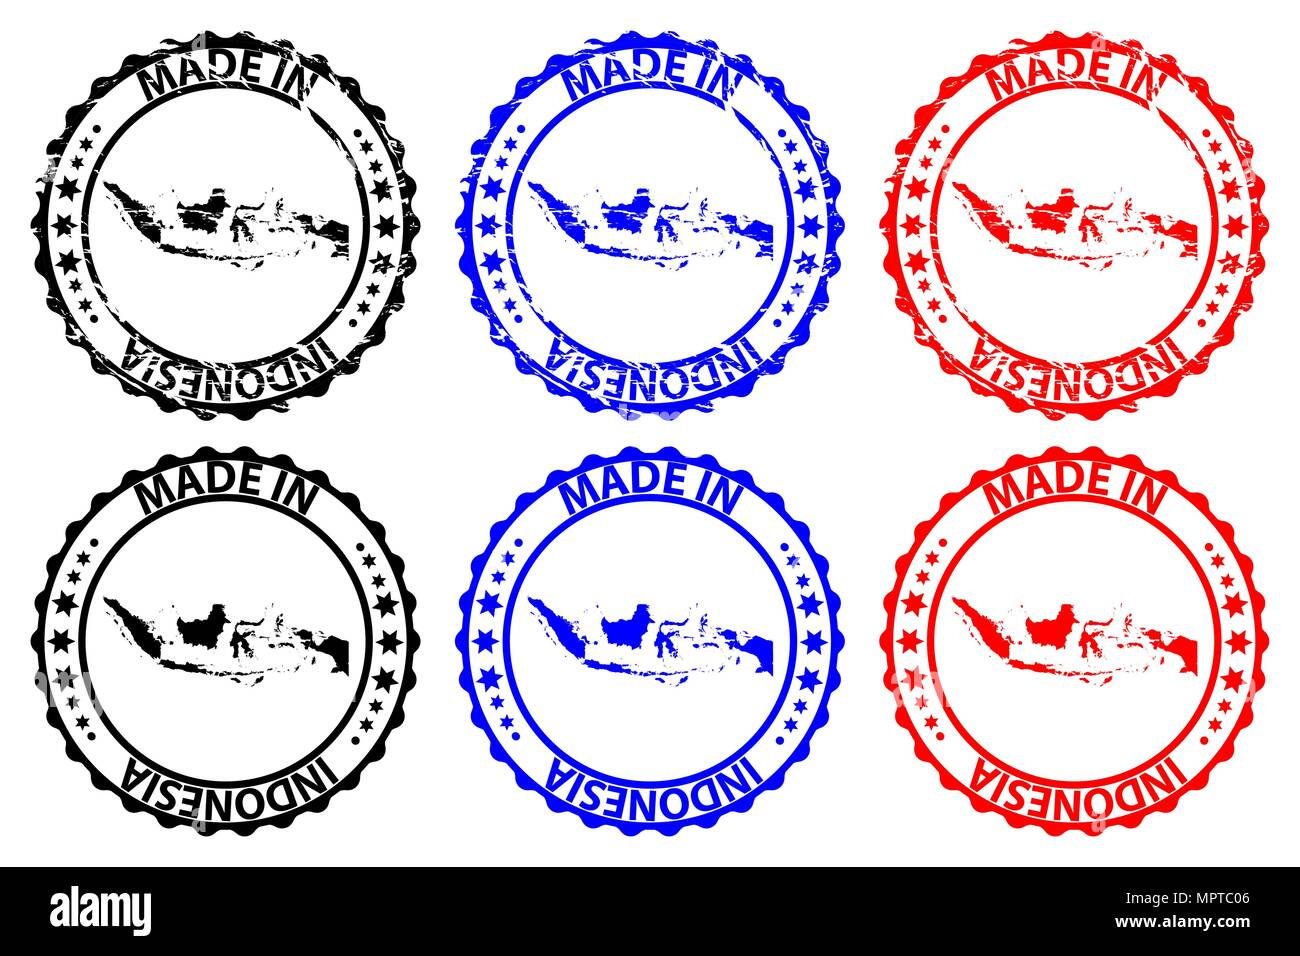 Made in Indonesia - rubber stamp - vector, Republic of Indonesia map pattern - black, blue and red Stock Vector